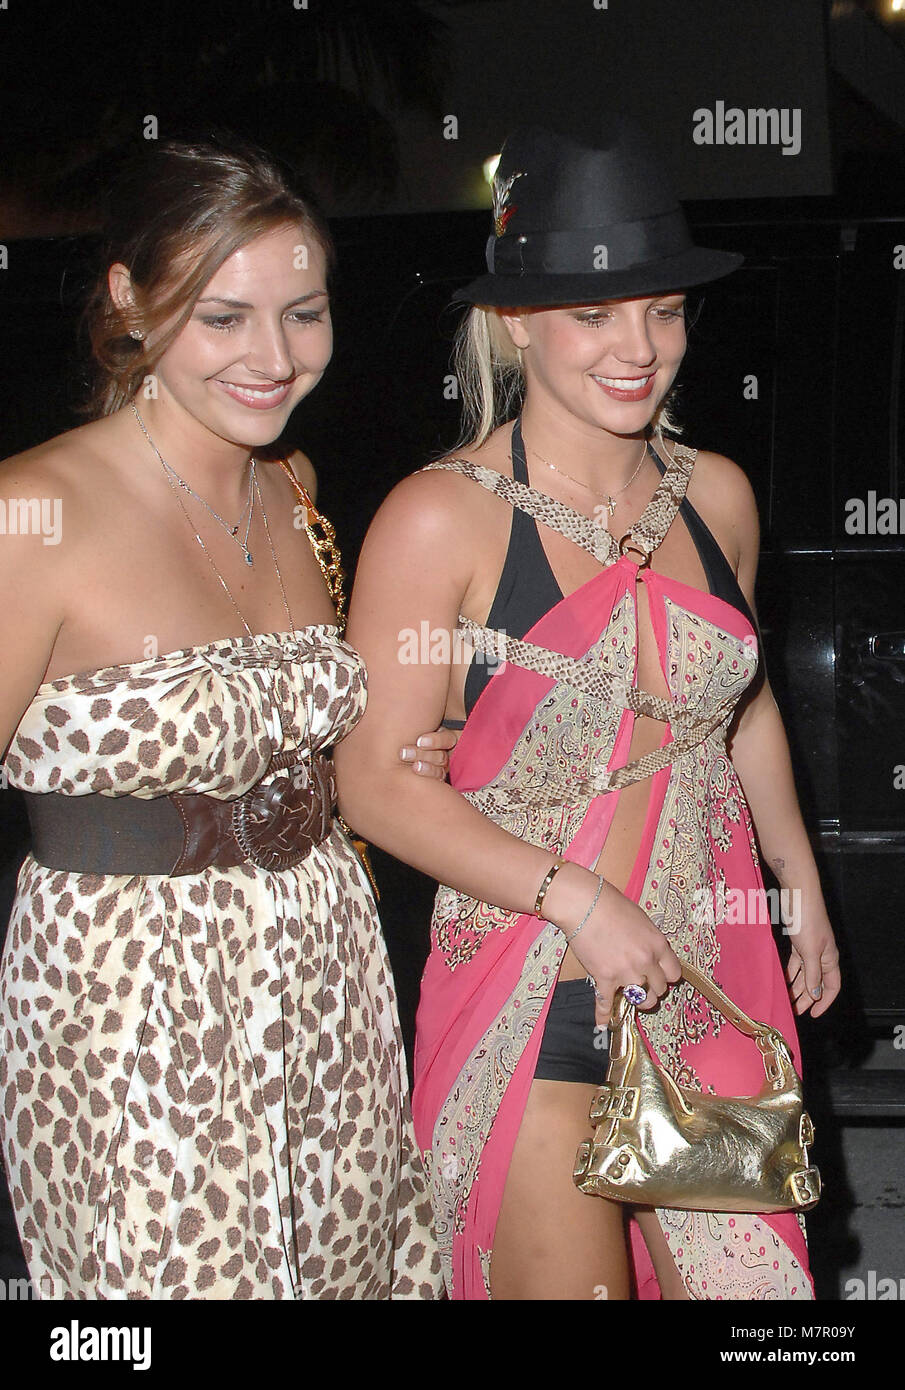 Britney Spears And Jamie Lynn Spears High Resolution Stock Photography And Images Alamy